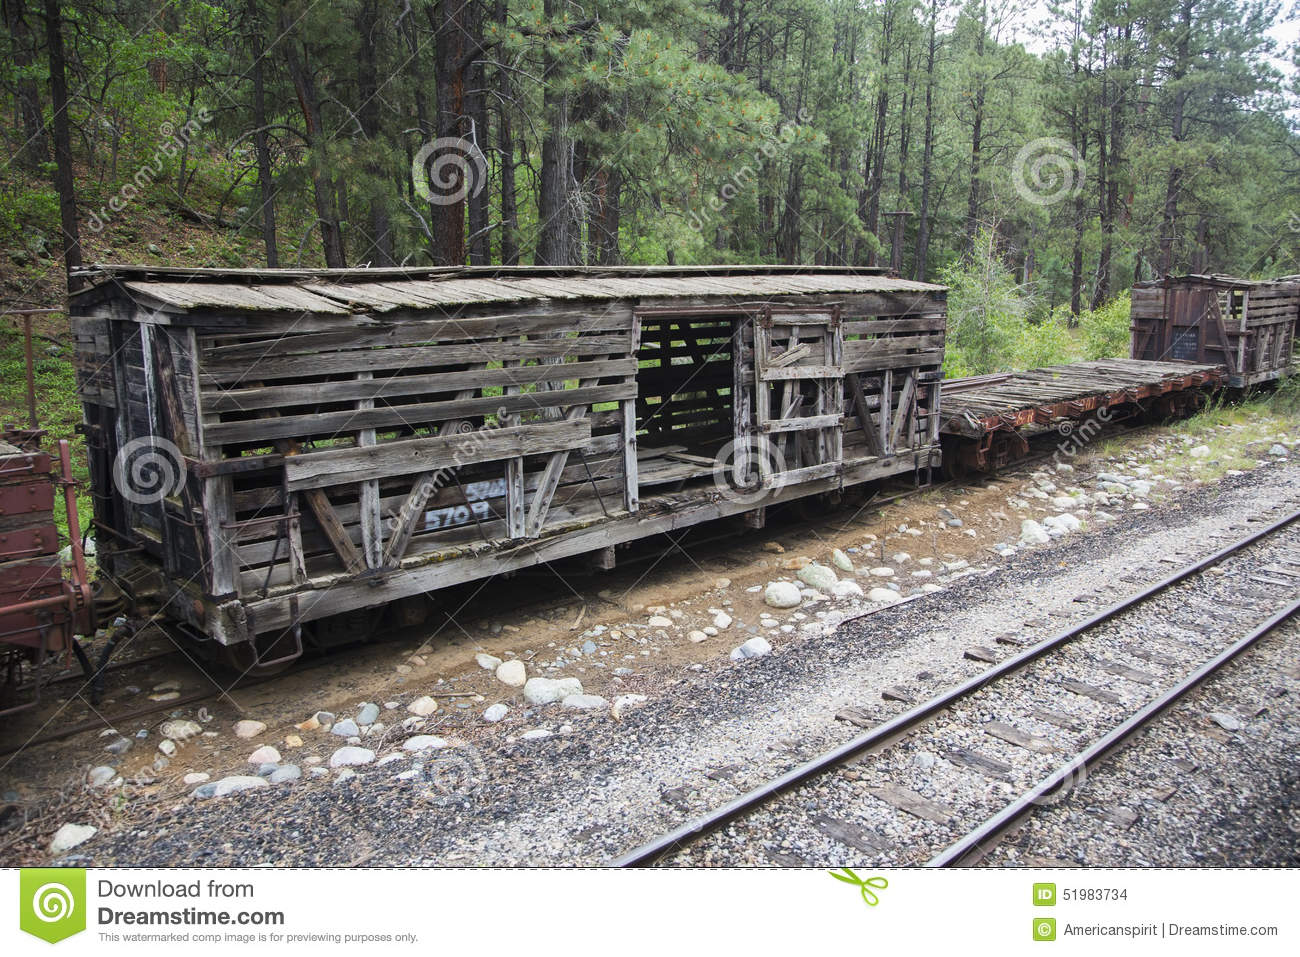 ... Narrow Gauge Railroad Steam Engine Train near Durango, Colorado, USA